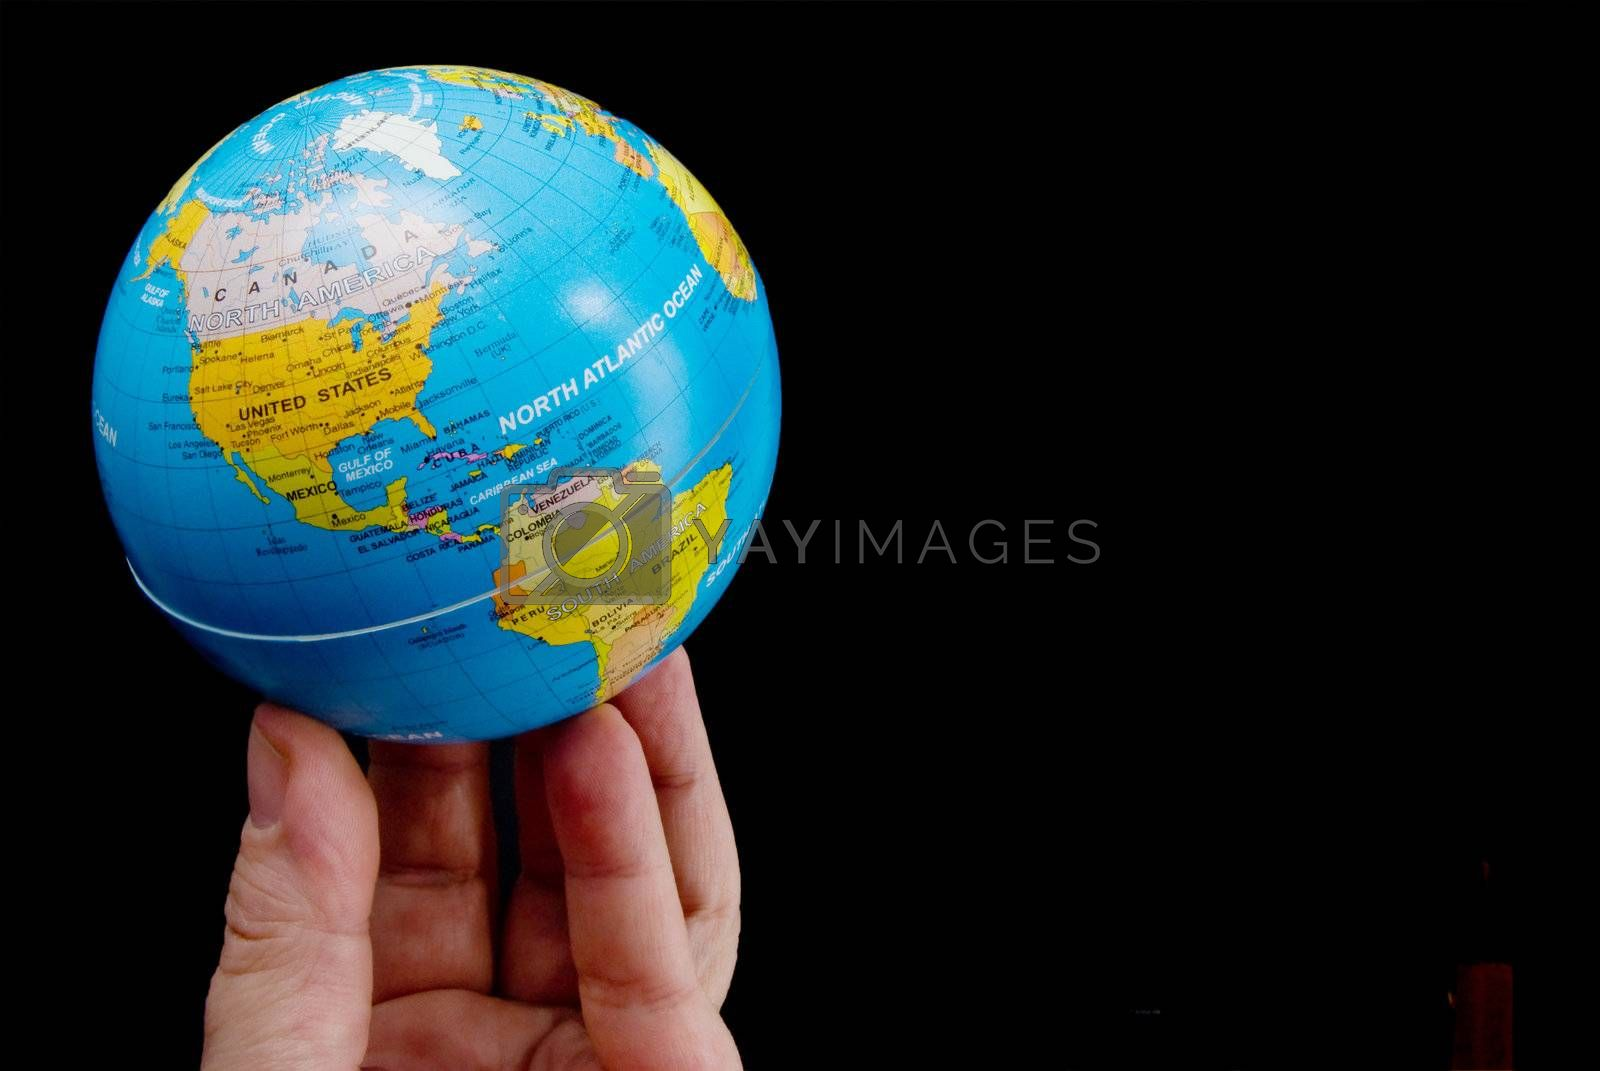 The concept of the world at my fingertips.